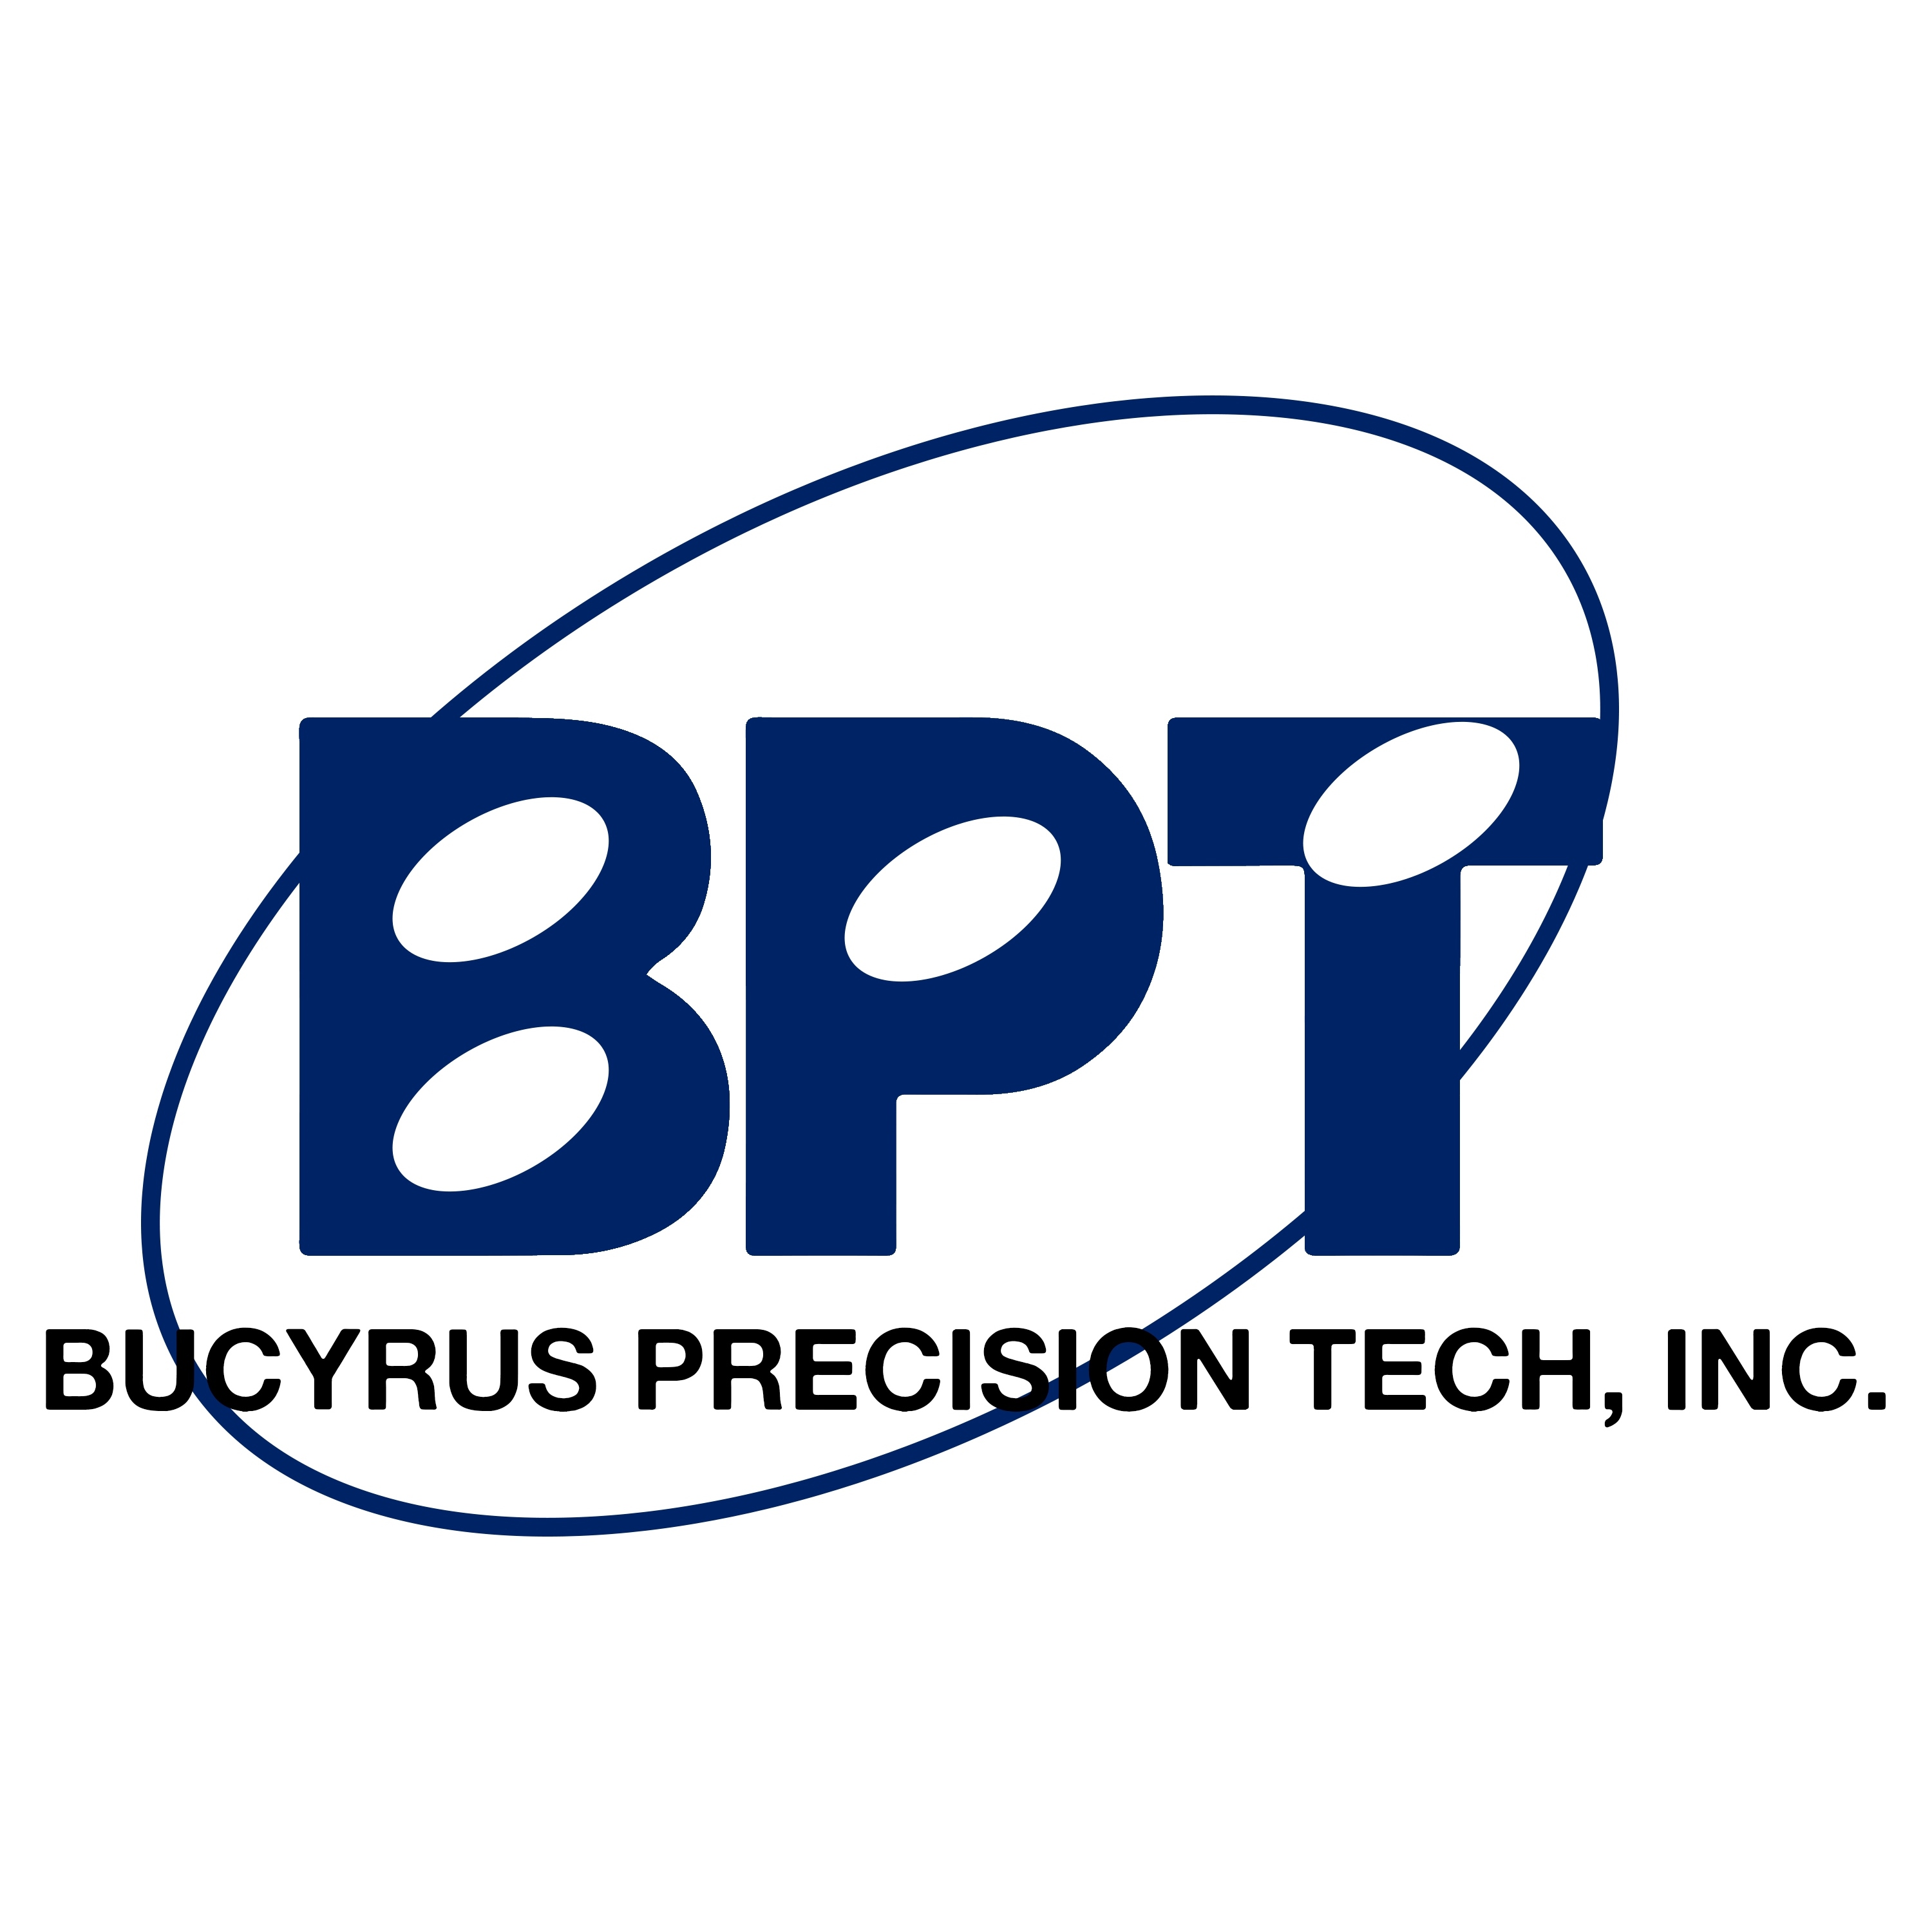 Bucyrus Precision Tech, Inc.